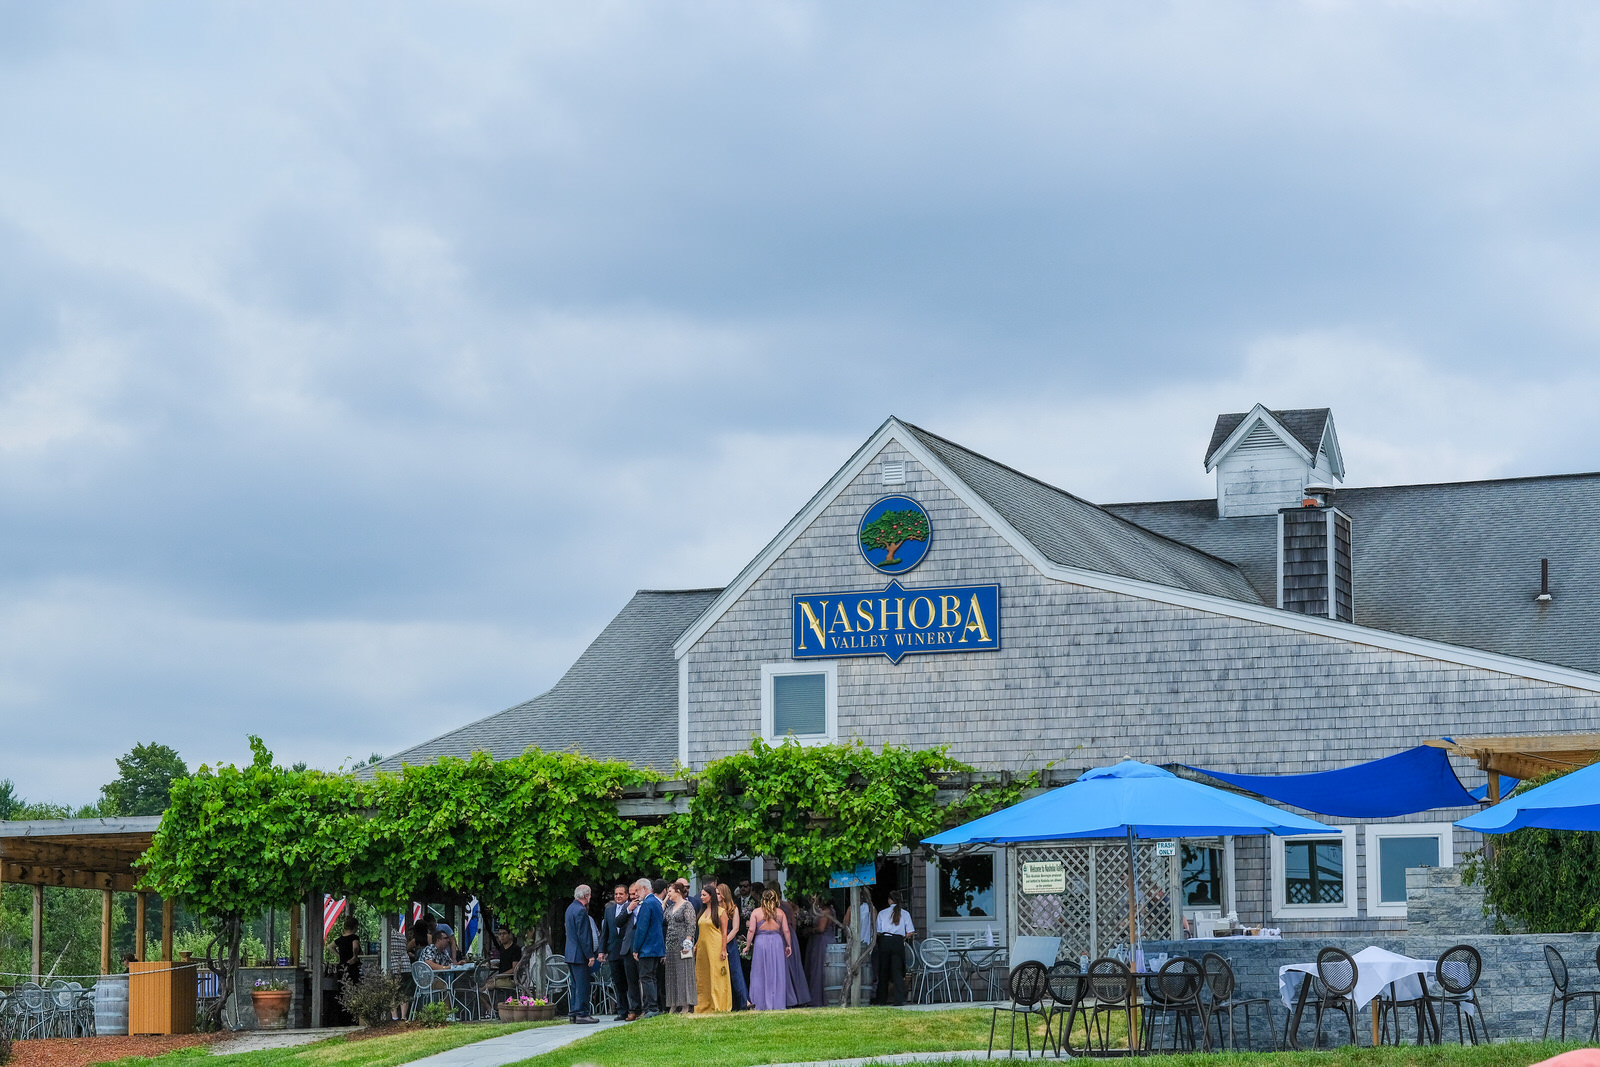 nashoba-valley-winery-wedding-photography-181.jpg